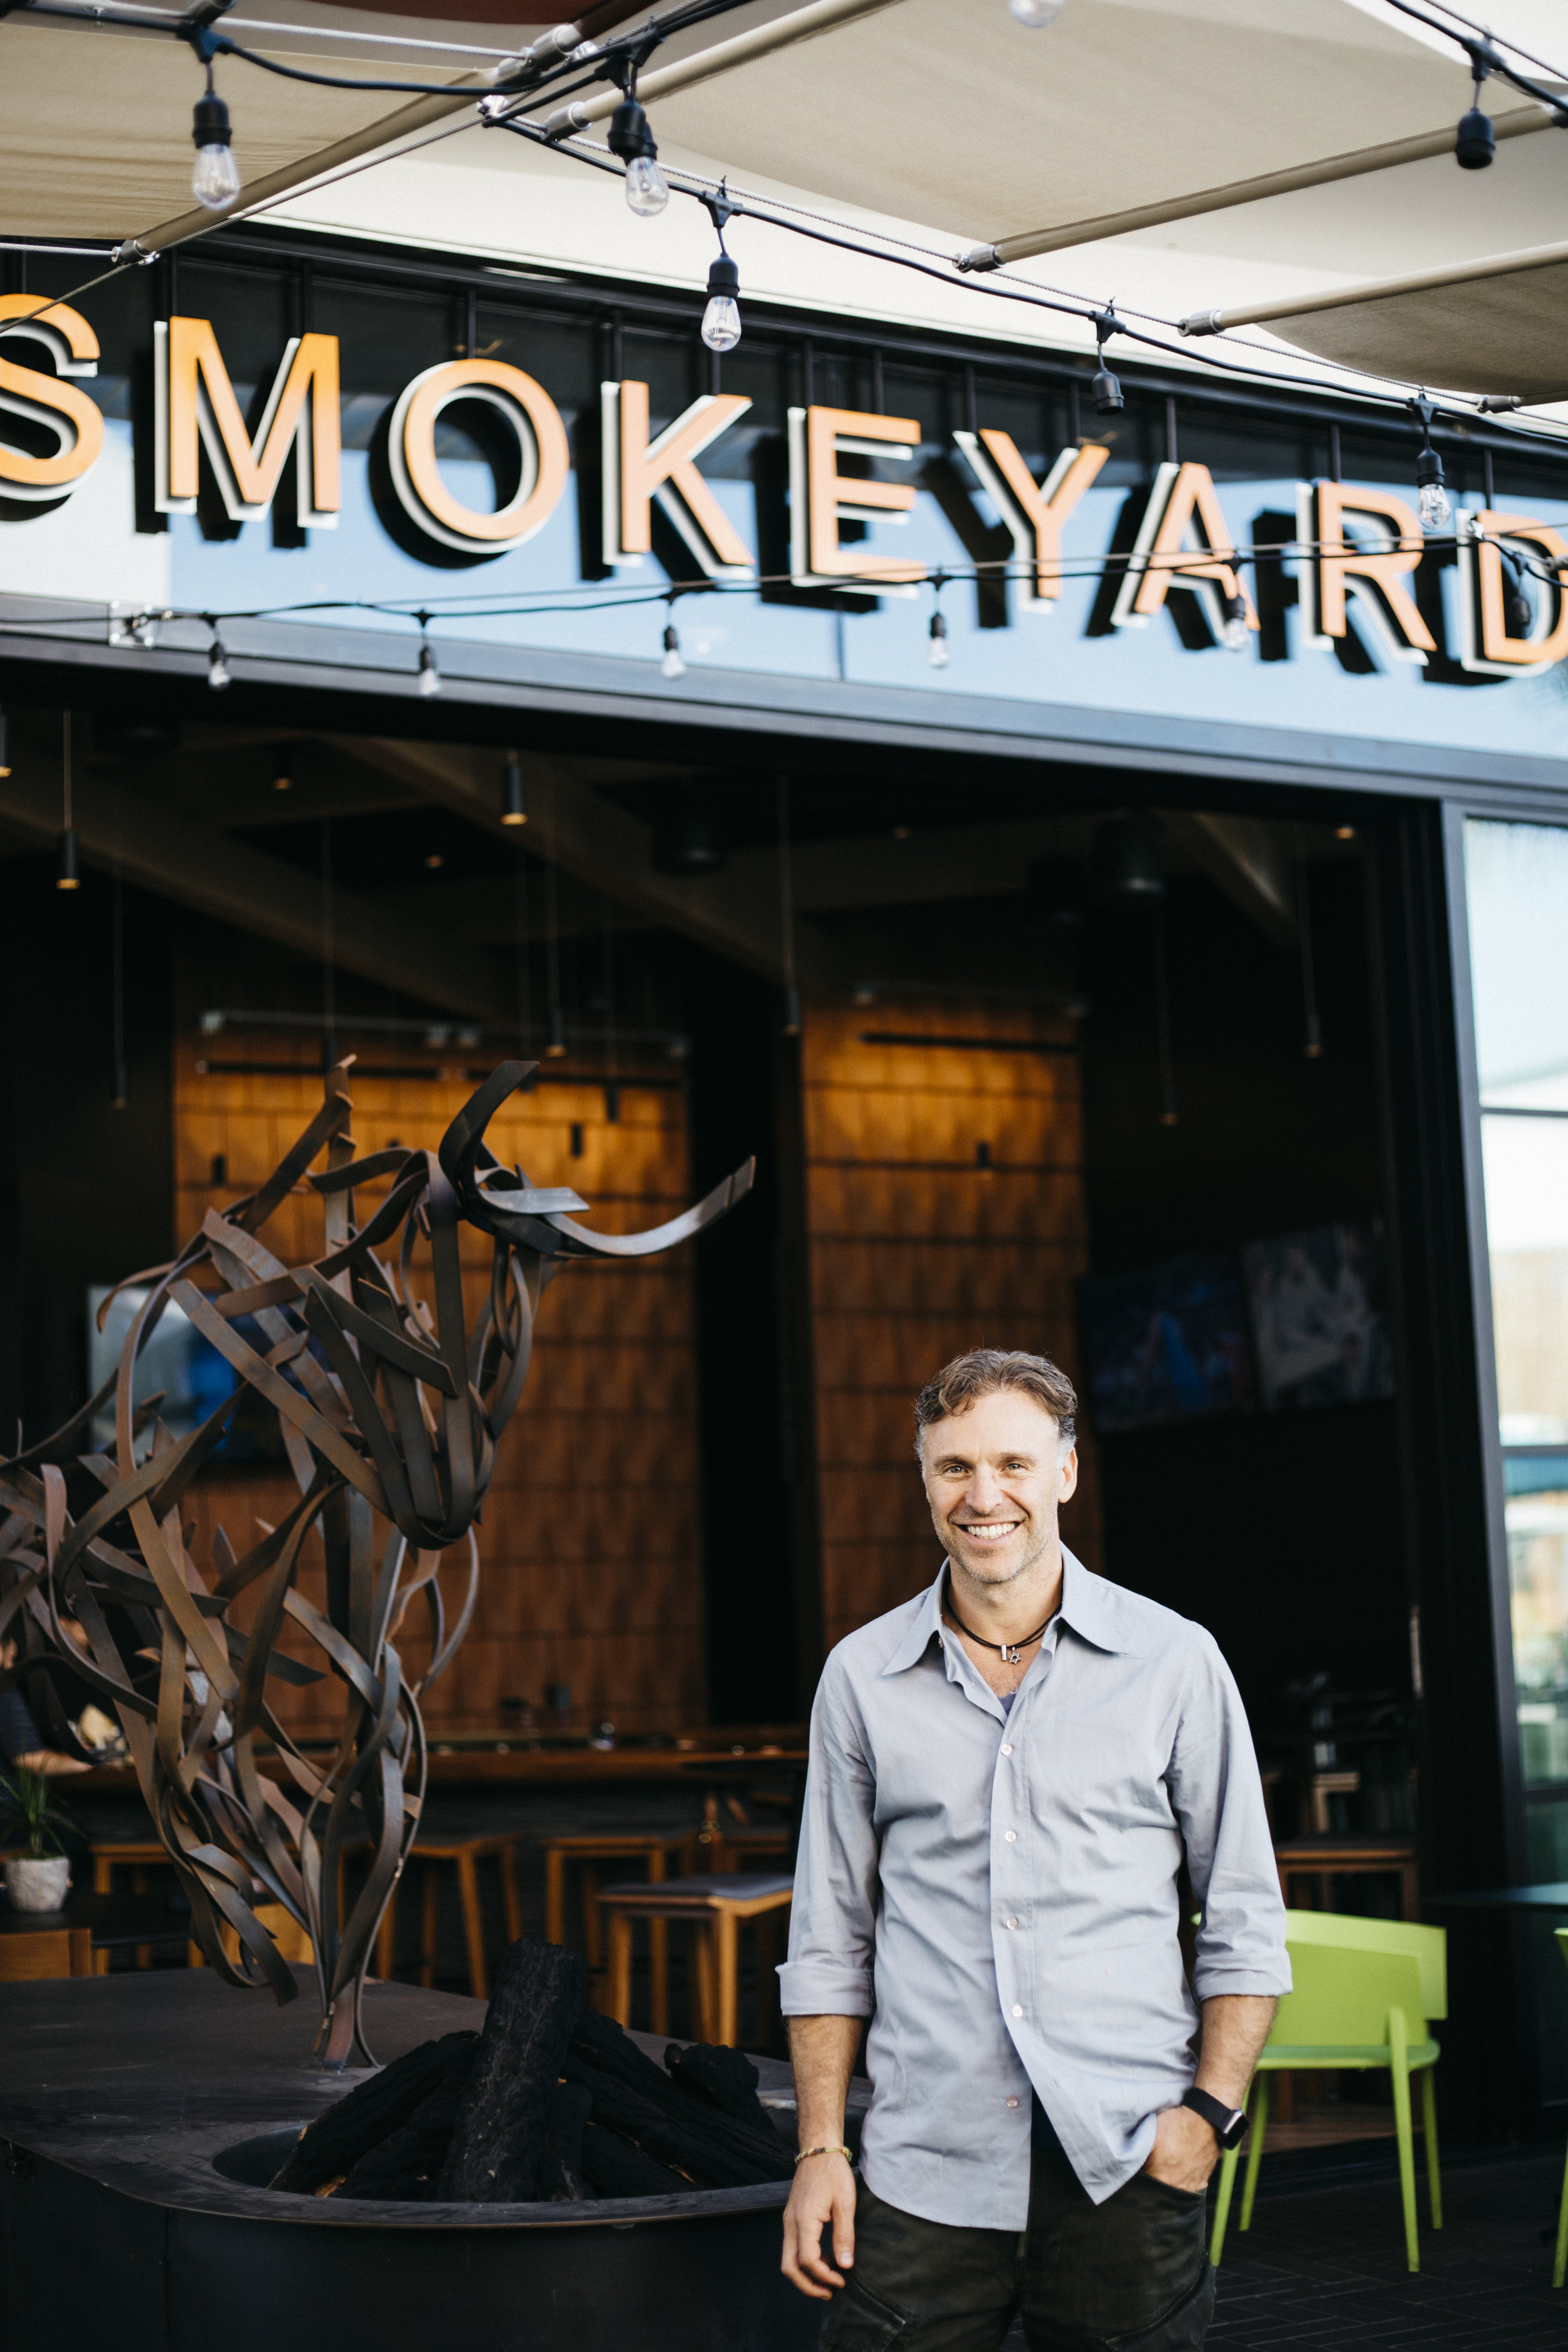 WELCOME TO SMOKEYARD SAN DIEGO - After a decade of creativity and discovery in the exciting LA restaurant scene, we decided to do what we love, in a town we love, and so Smokeyard Mammoth was born. Ten years later, we've brought Smokeyard to sunny San Diego to begin a new chapter.Our style is modern California BBQ. All our meats are dry-rubbed, then smoked slow and low, till tender and juicy. From our roots in South Africa to our home in California, Smokeyard's menu is fun, familiar, delicious, and crave-worthy. From our kitchen to your table, or catered to your home or office, we hope you enjoy Smokeyard Modern BBQ!